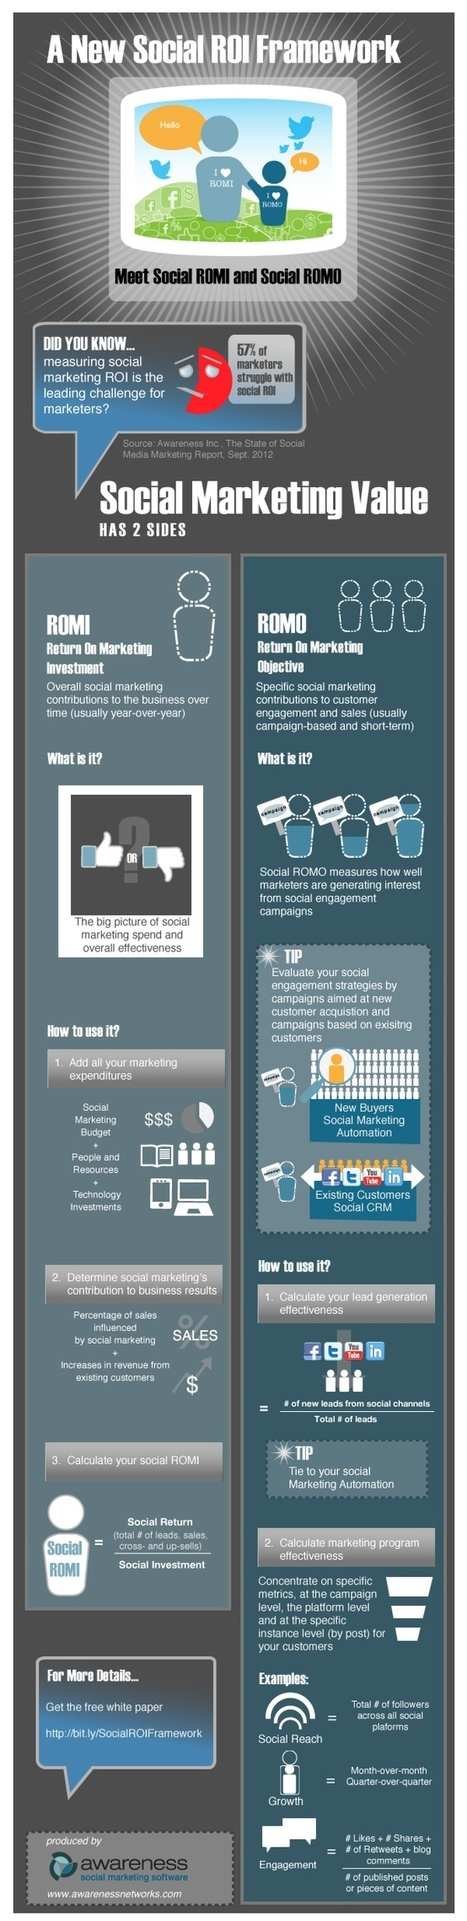 Are There Better Ways To Measure Social Media ROI? [#INFOGRAPHIC] | Business change | Scoop.it